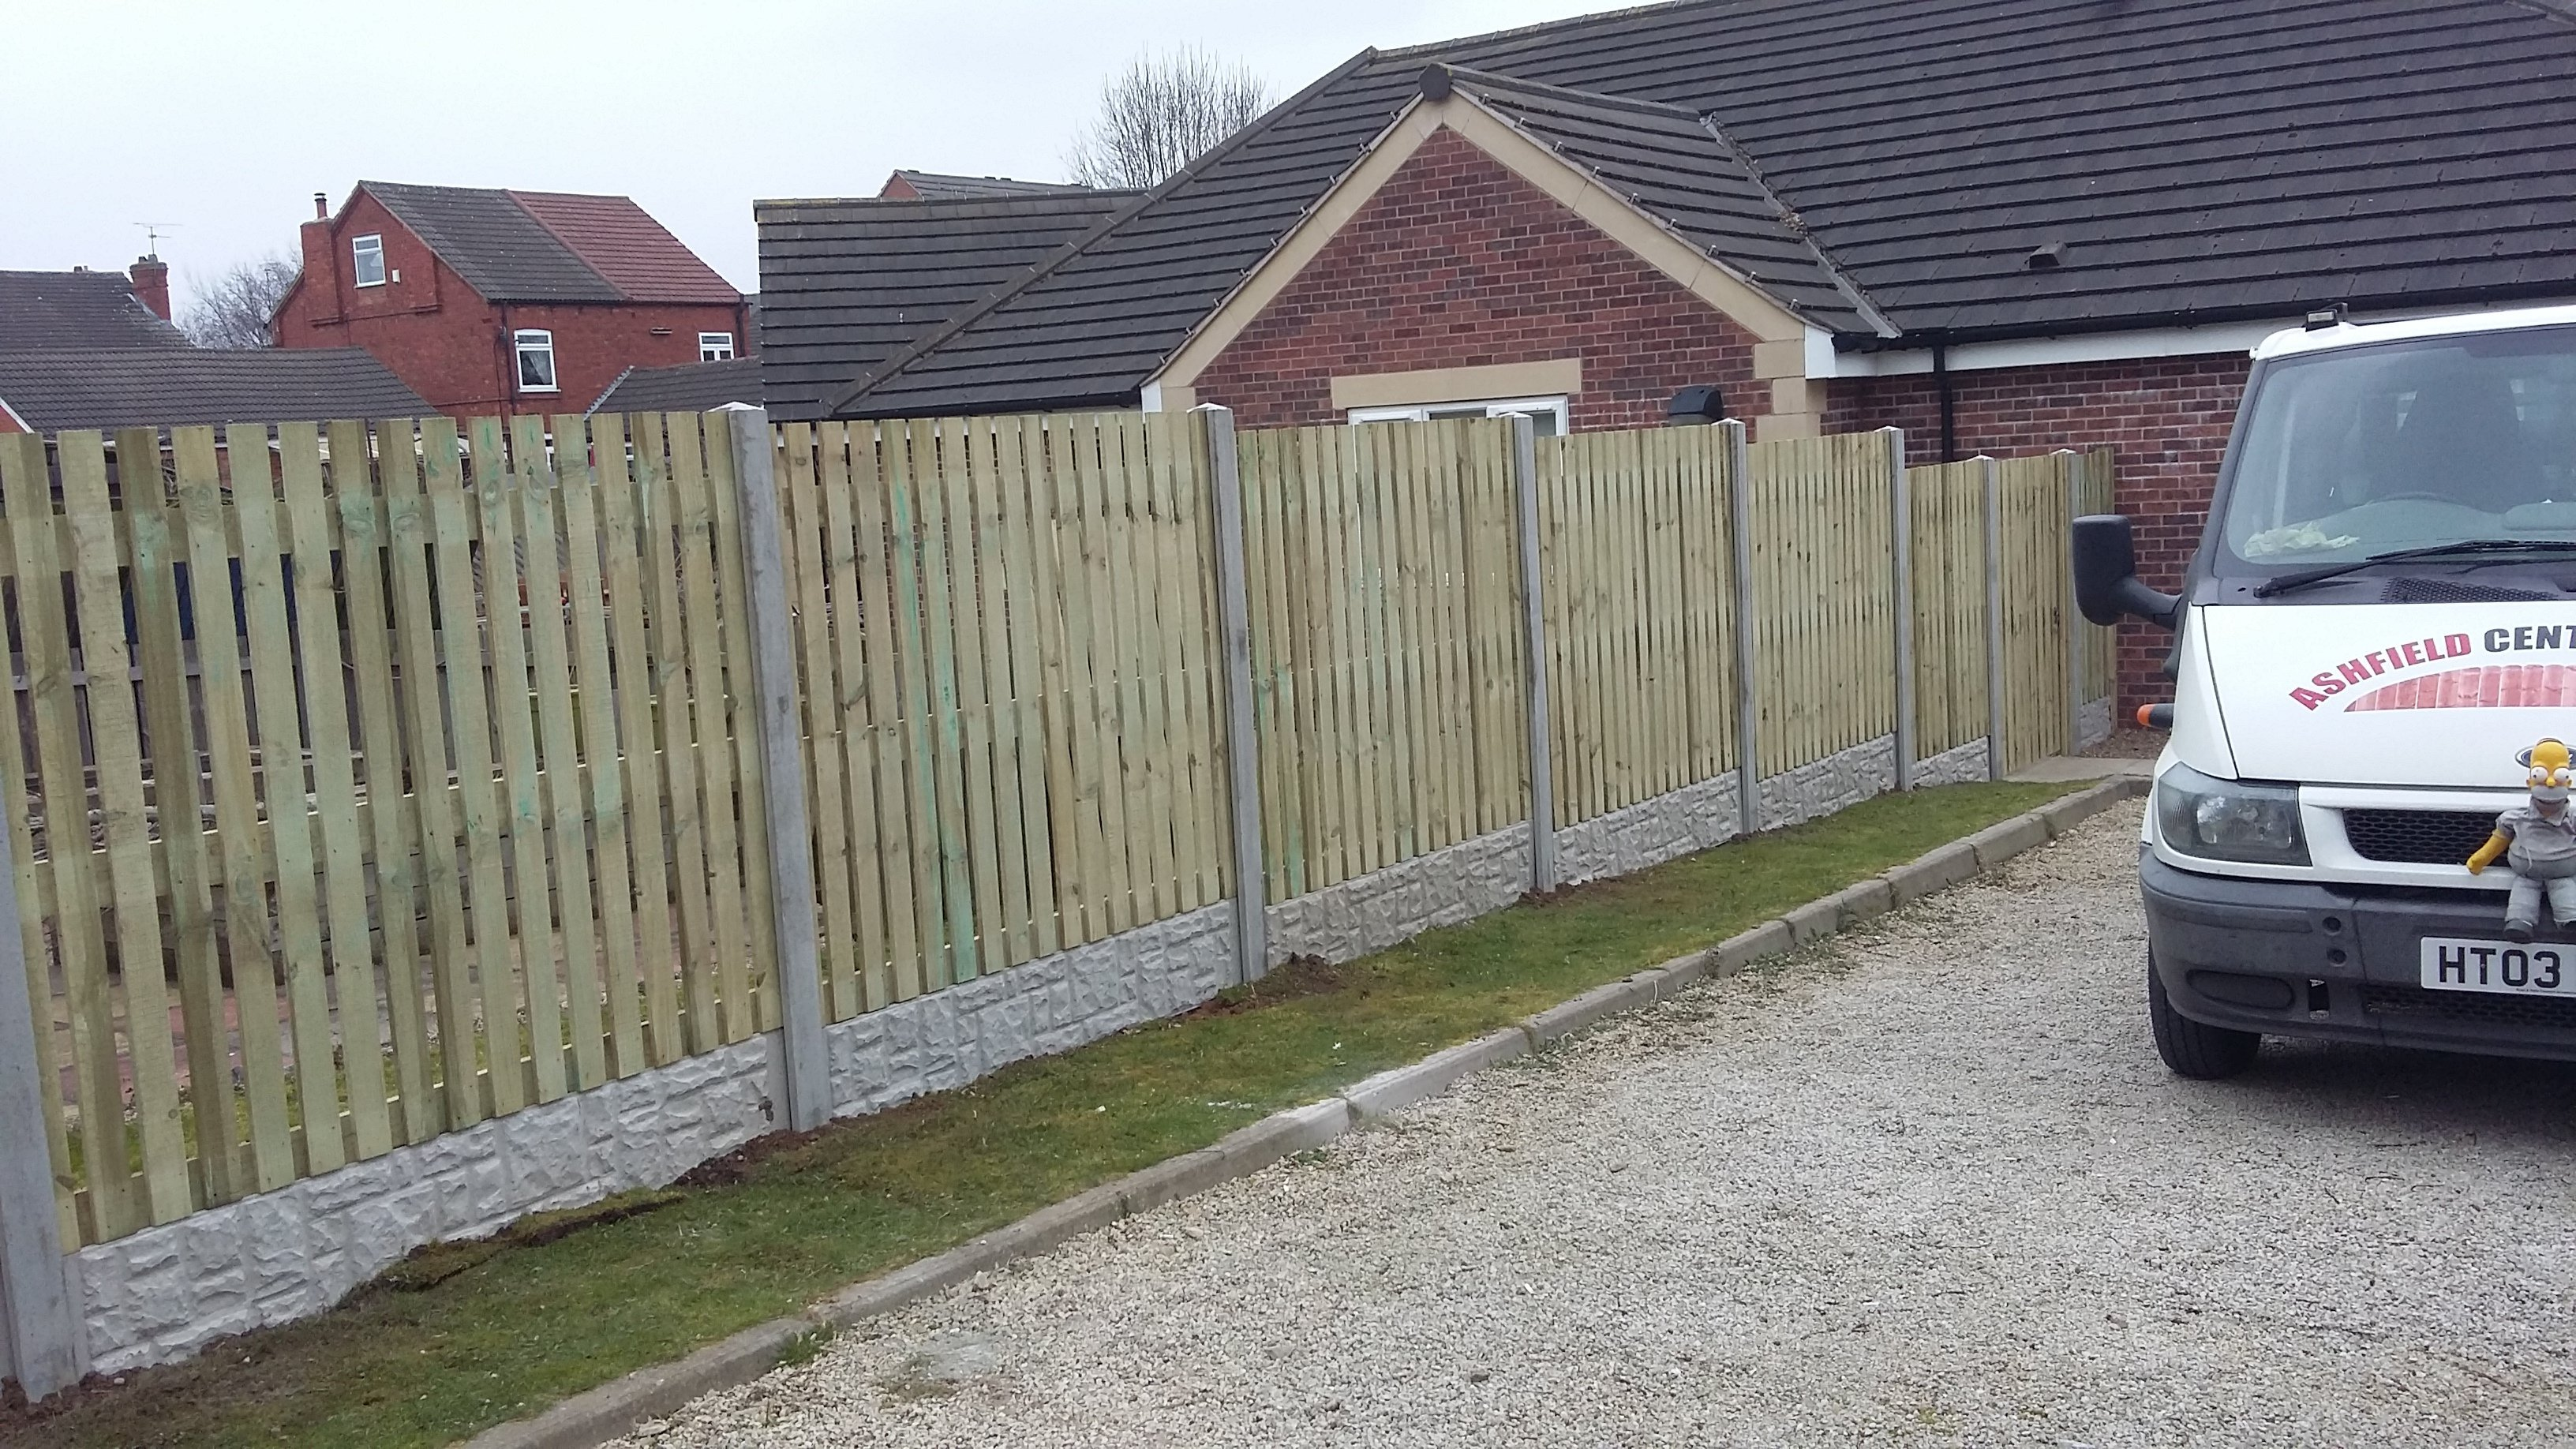 A fence with a curved top